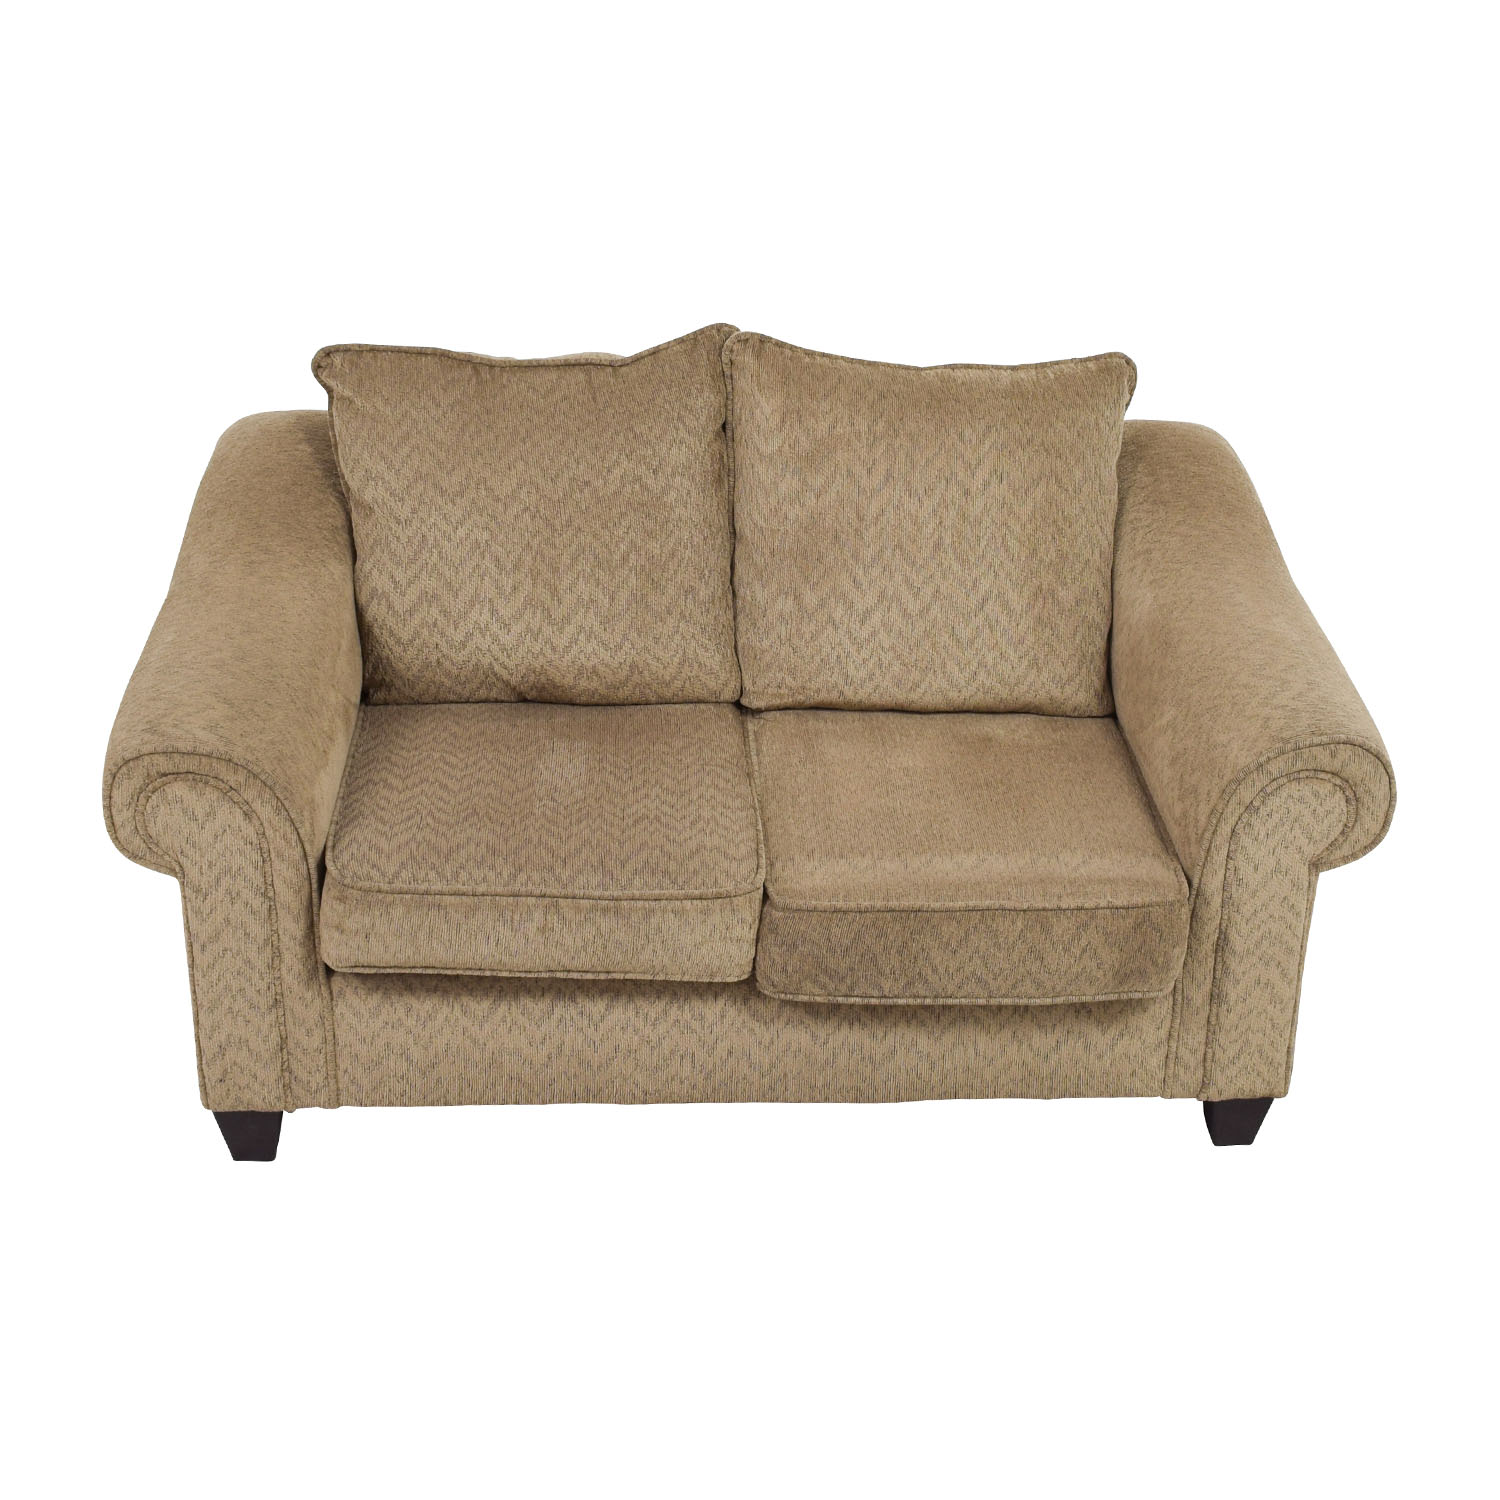 Bobs Furniture Bobs Furniture Two-Toned Brown Loveseat dimensions